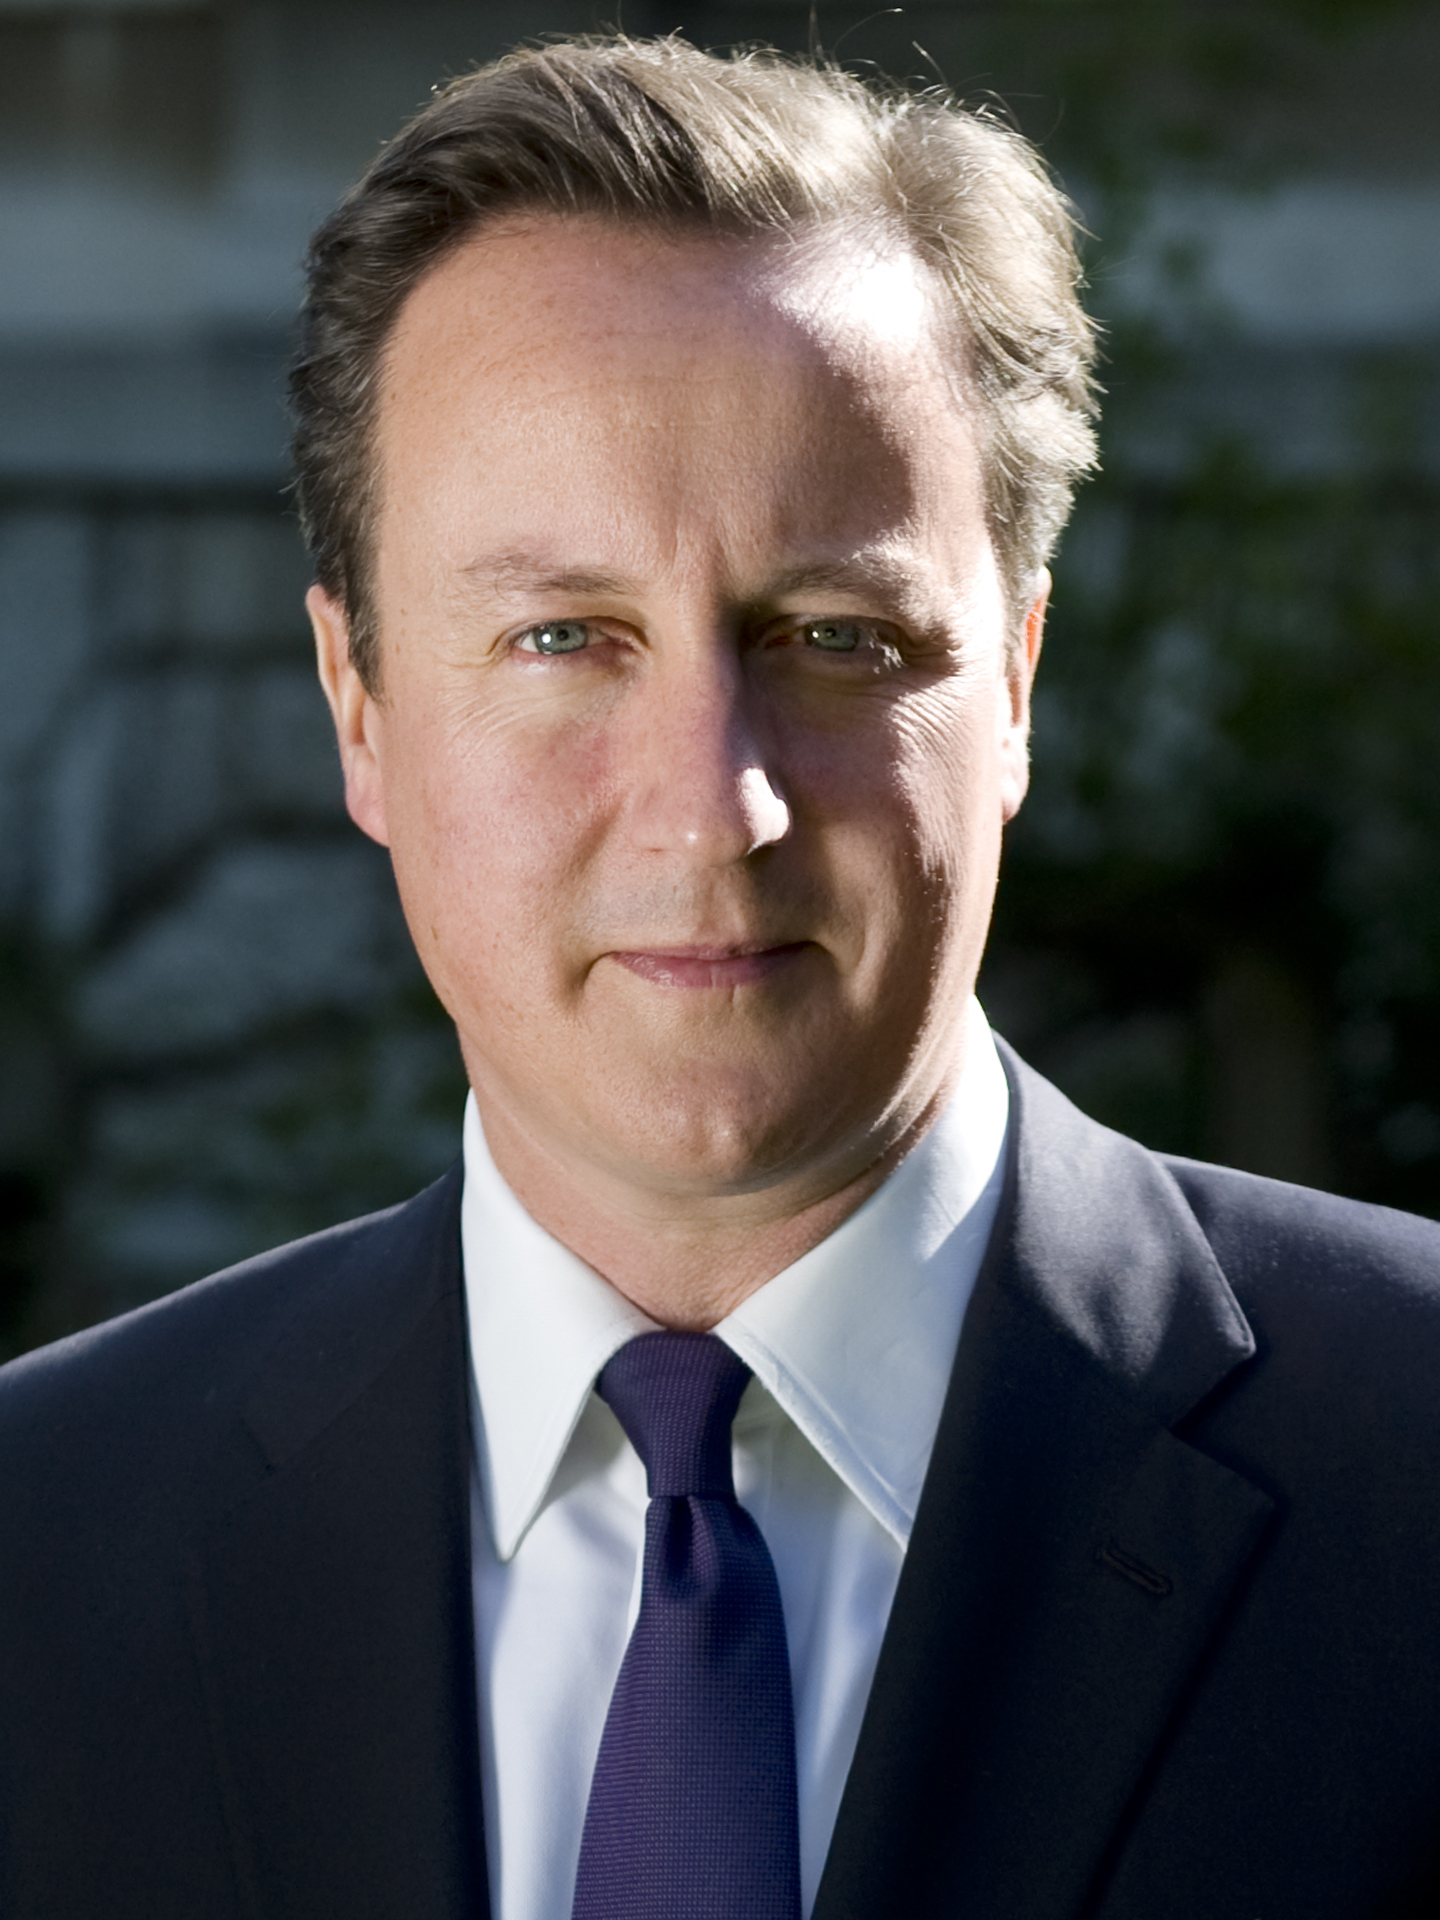 David Cameron's official portrait from the 10 Downing Street website